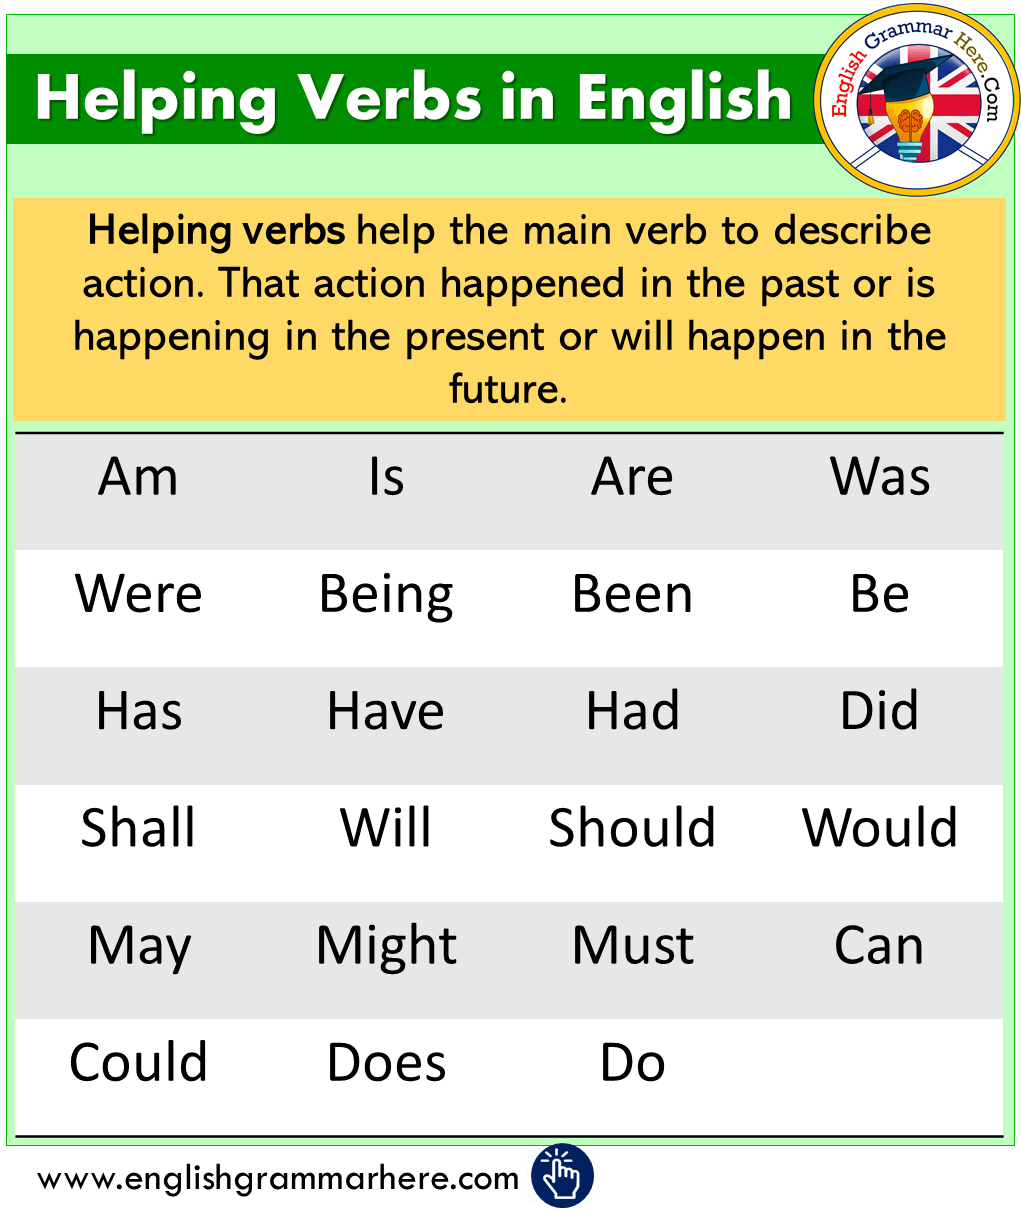 Helping Verbs, Meanings and Examples in English